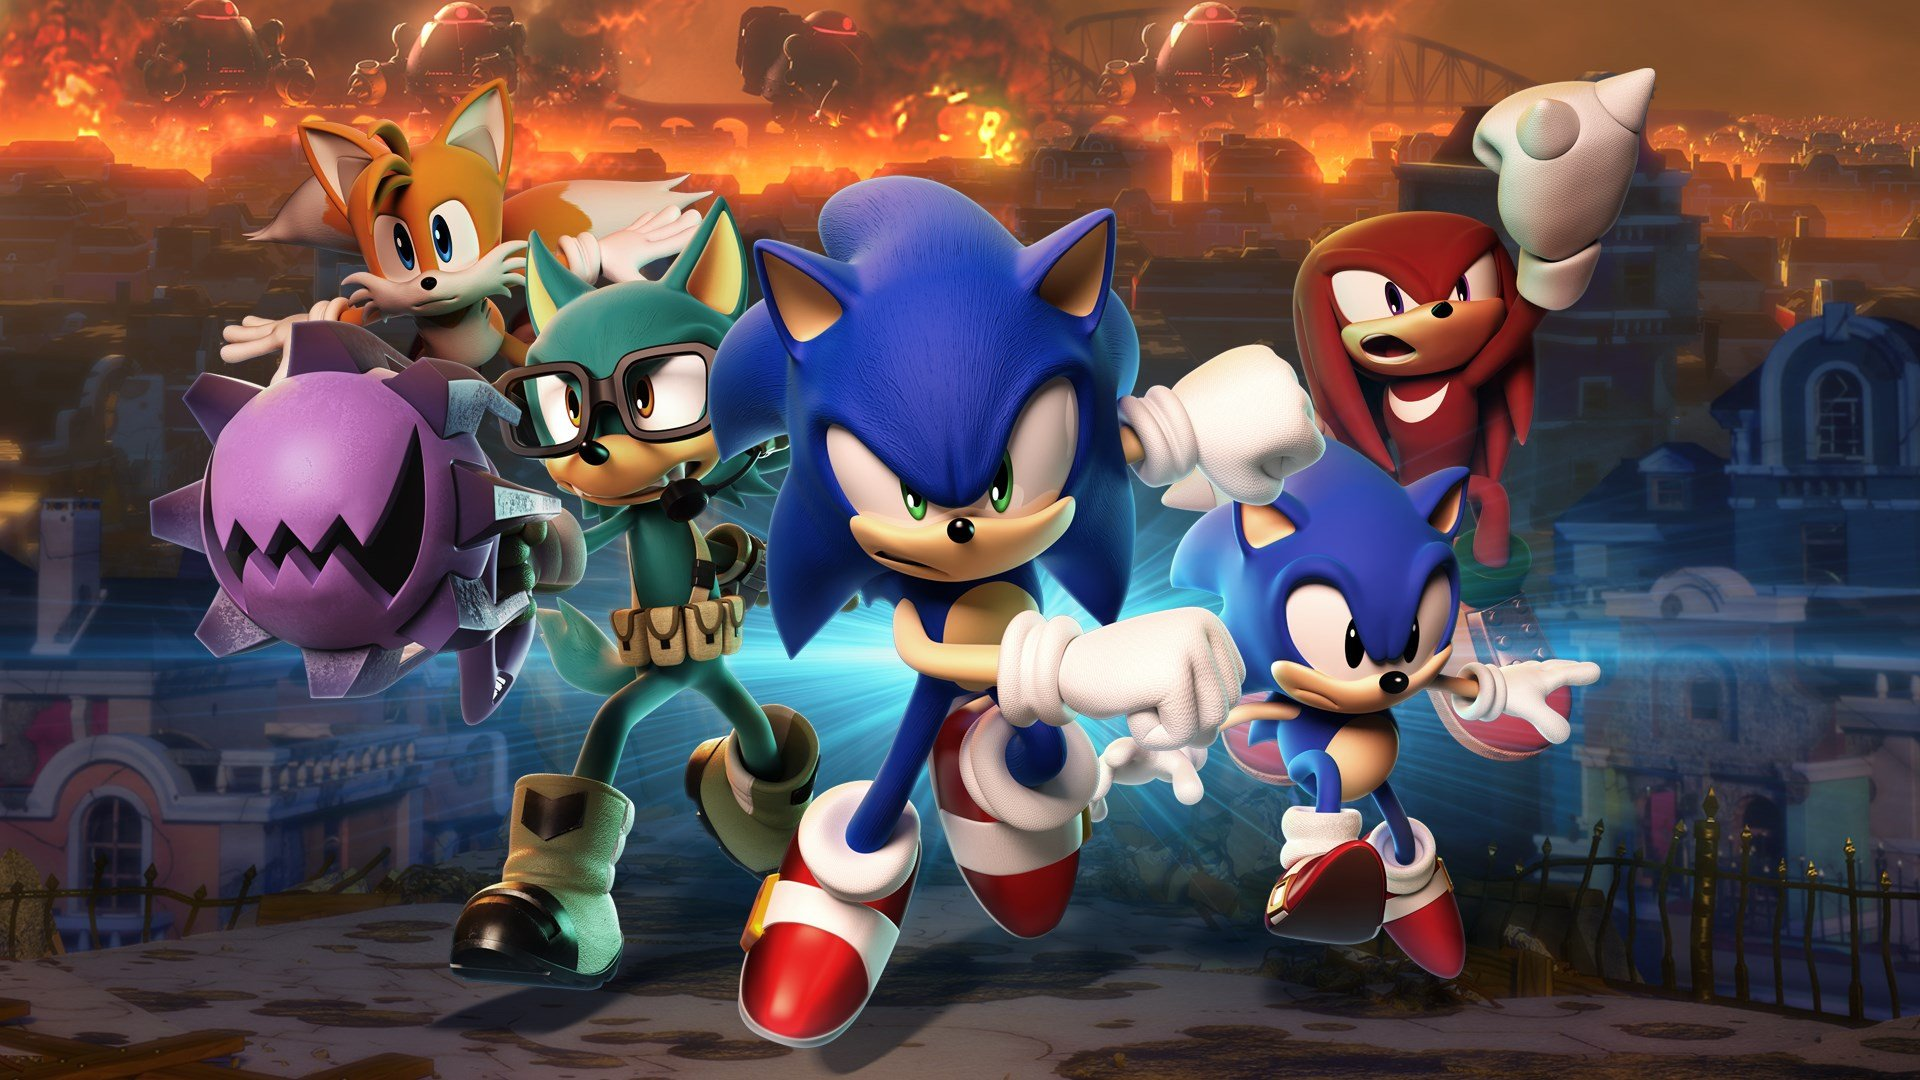 2021 Will Be the 'Next Big Year for Sonic', Says Sonic Team